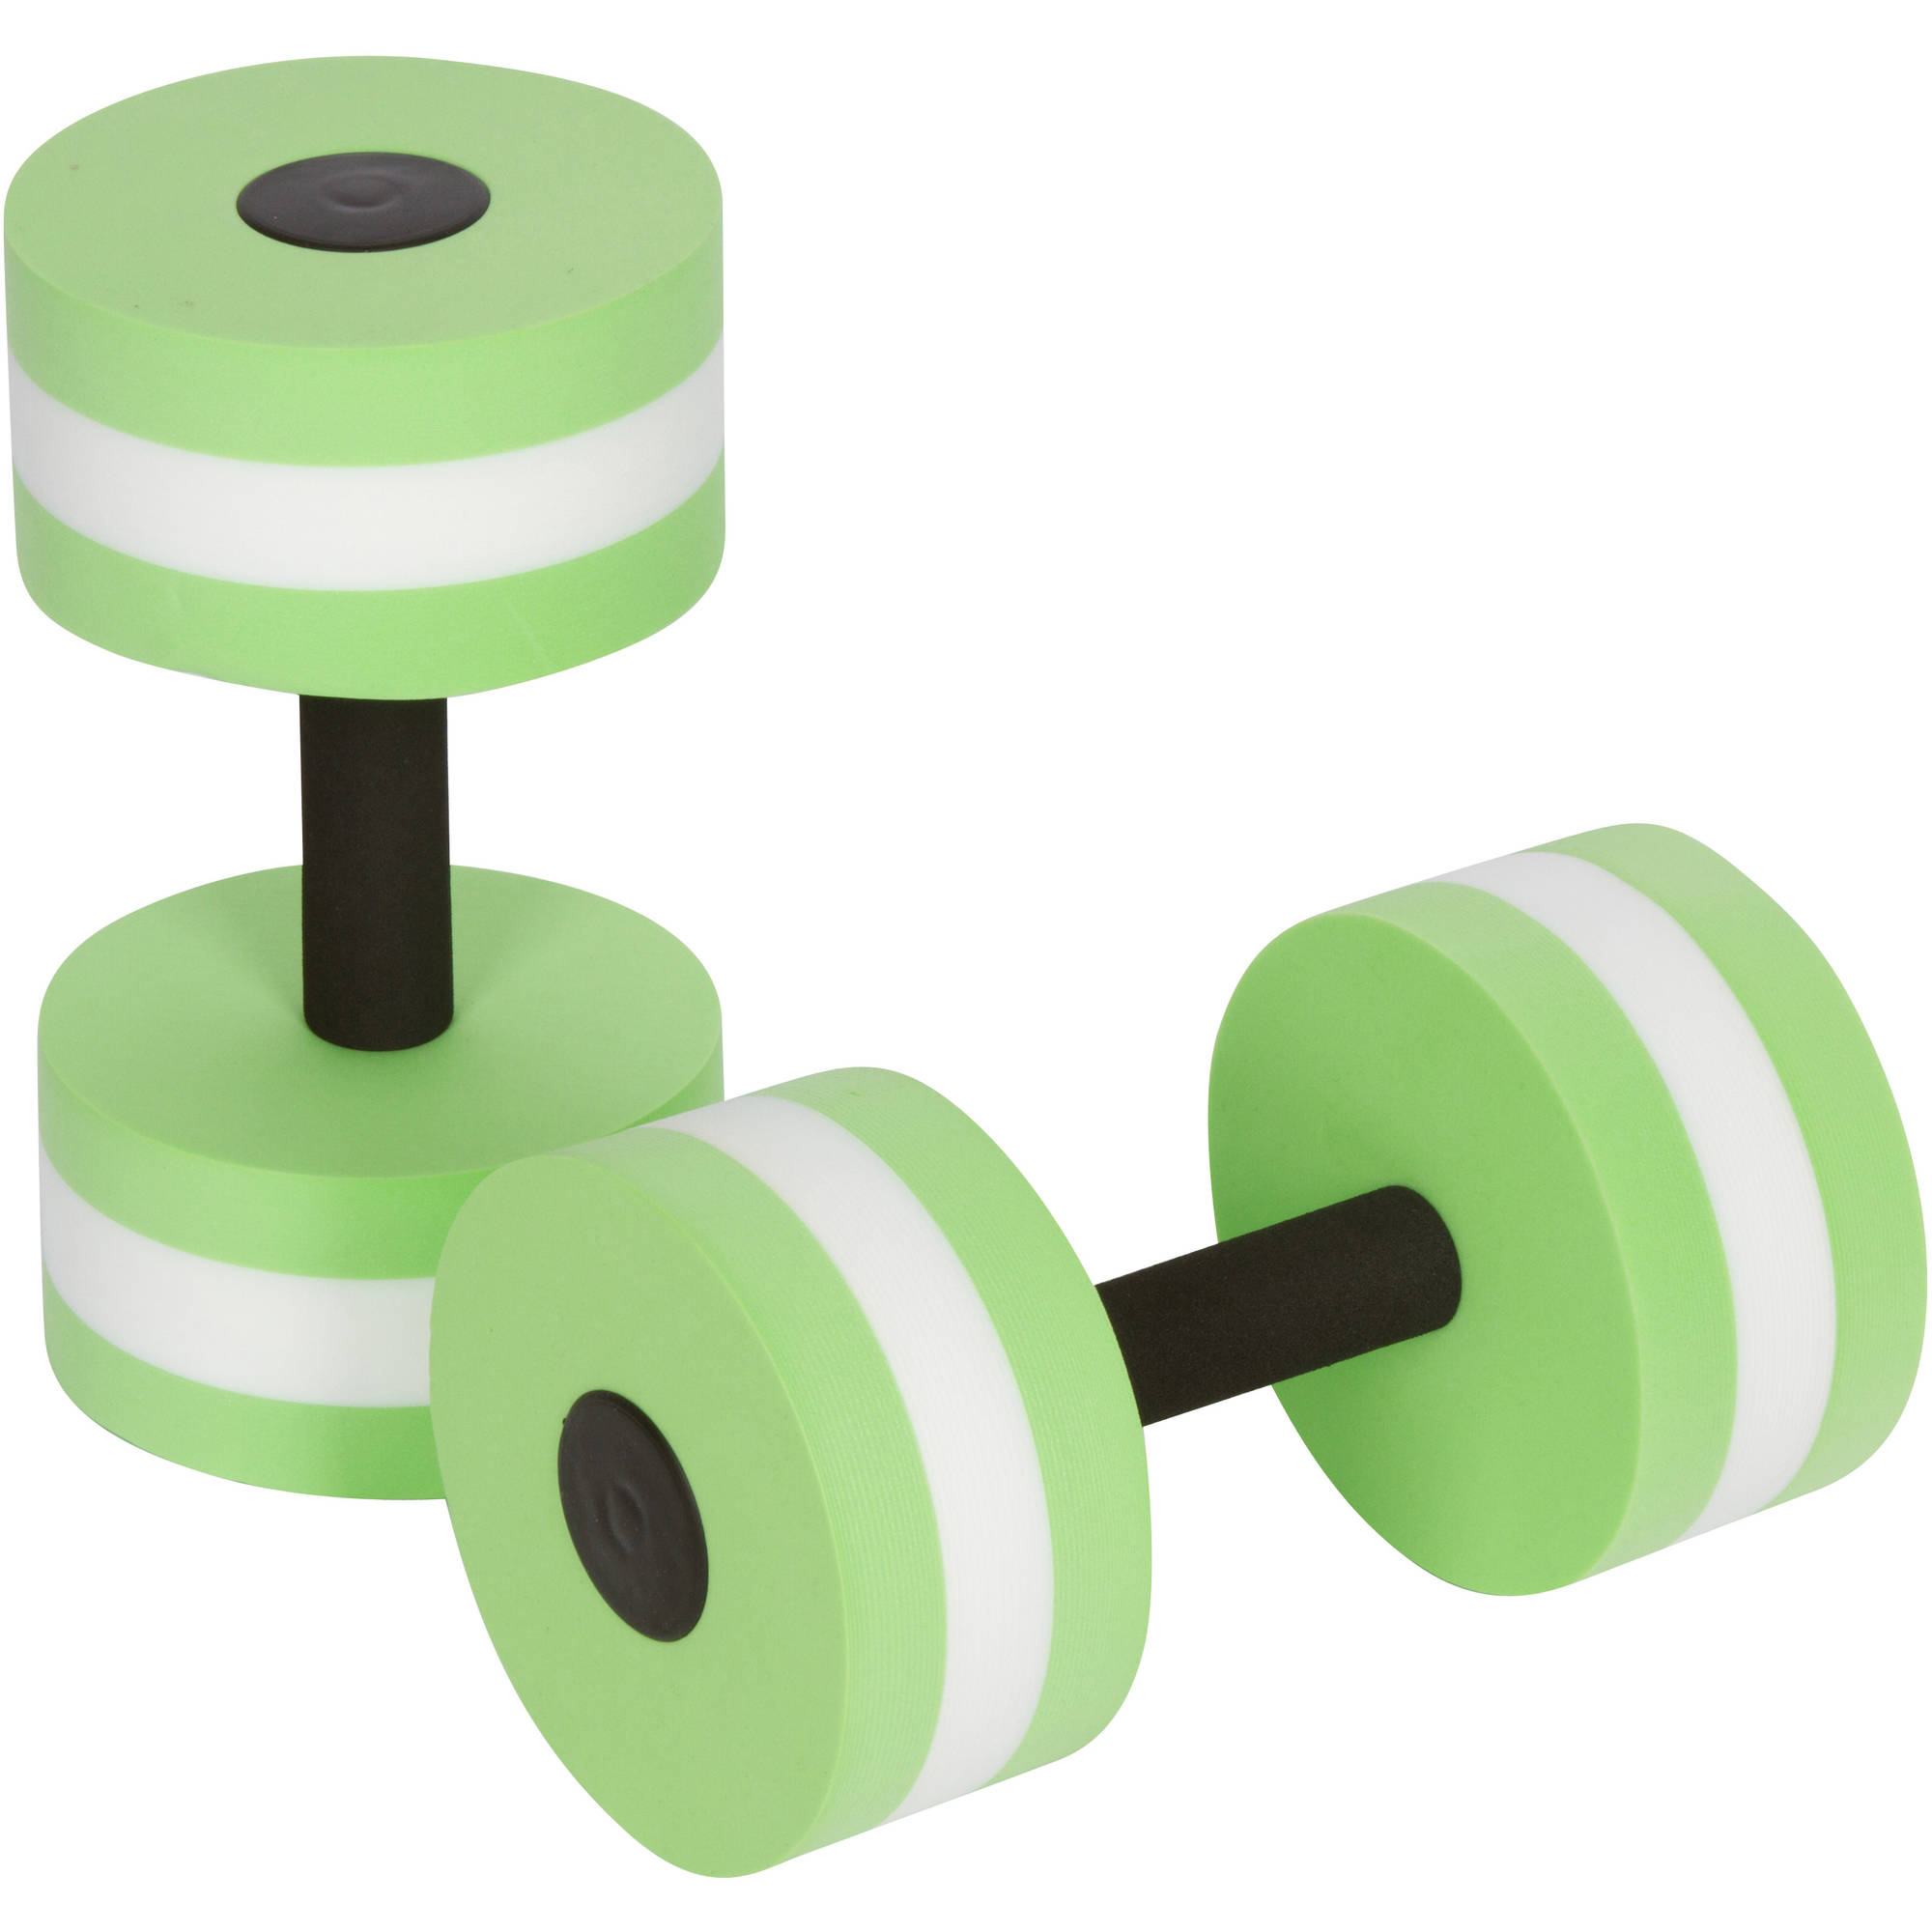 Aquatic Exercise Dumbells, Set of 2, For Water Aerobics, By Trademark Innovations, Light Green